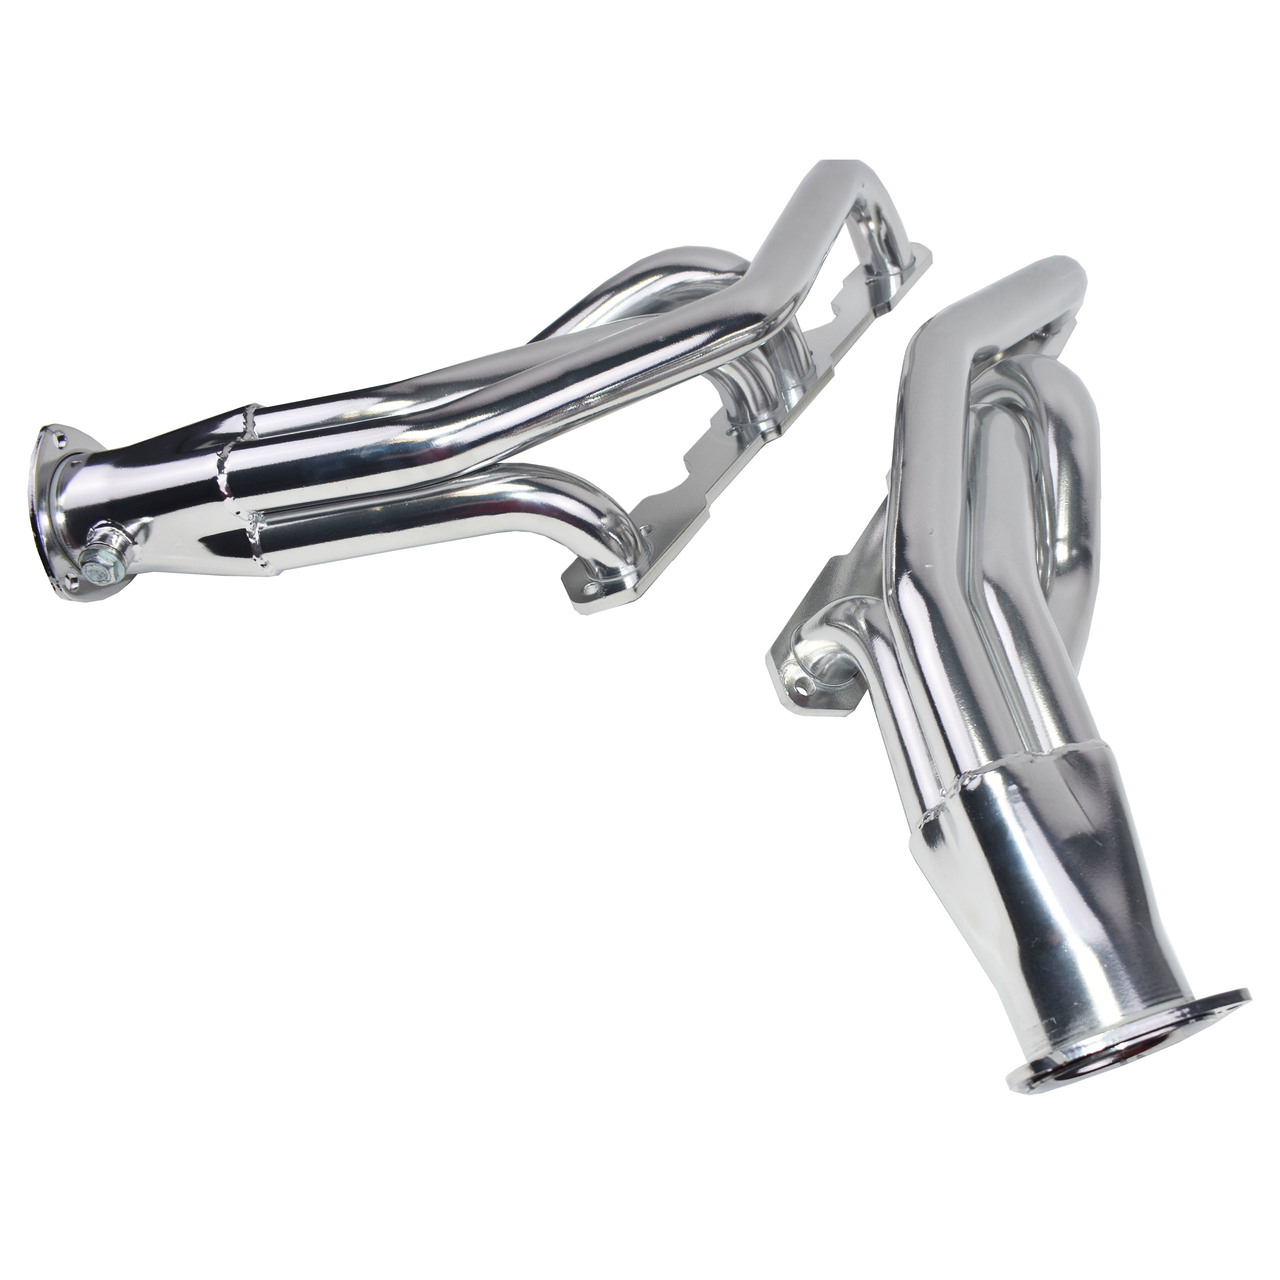 A-Team Performance SBC CHEVY/GMC TRUCK 1500, 2500, 3500 88-95 5.0L 5.7L 2WD & 4WD  CERAMIC COATED HEADERS